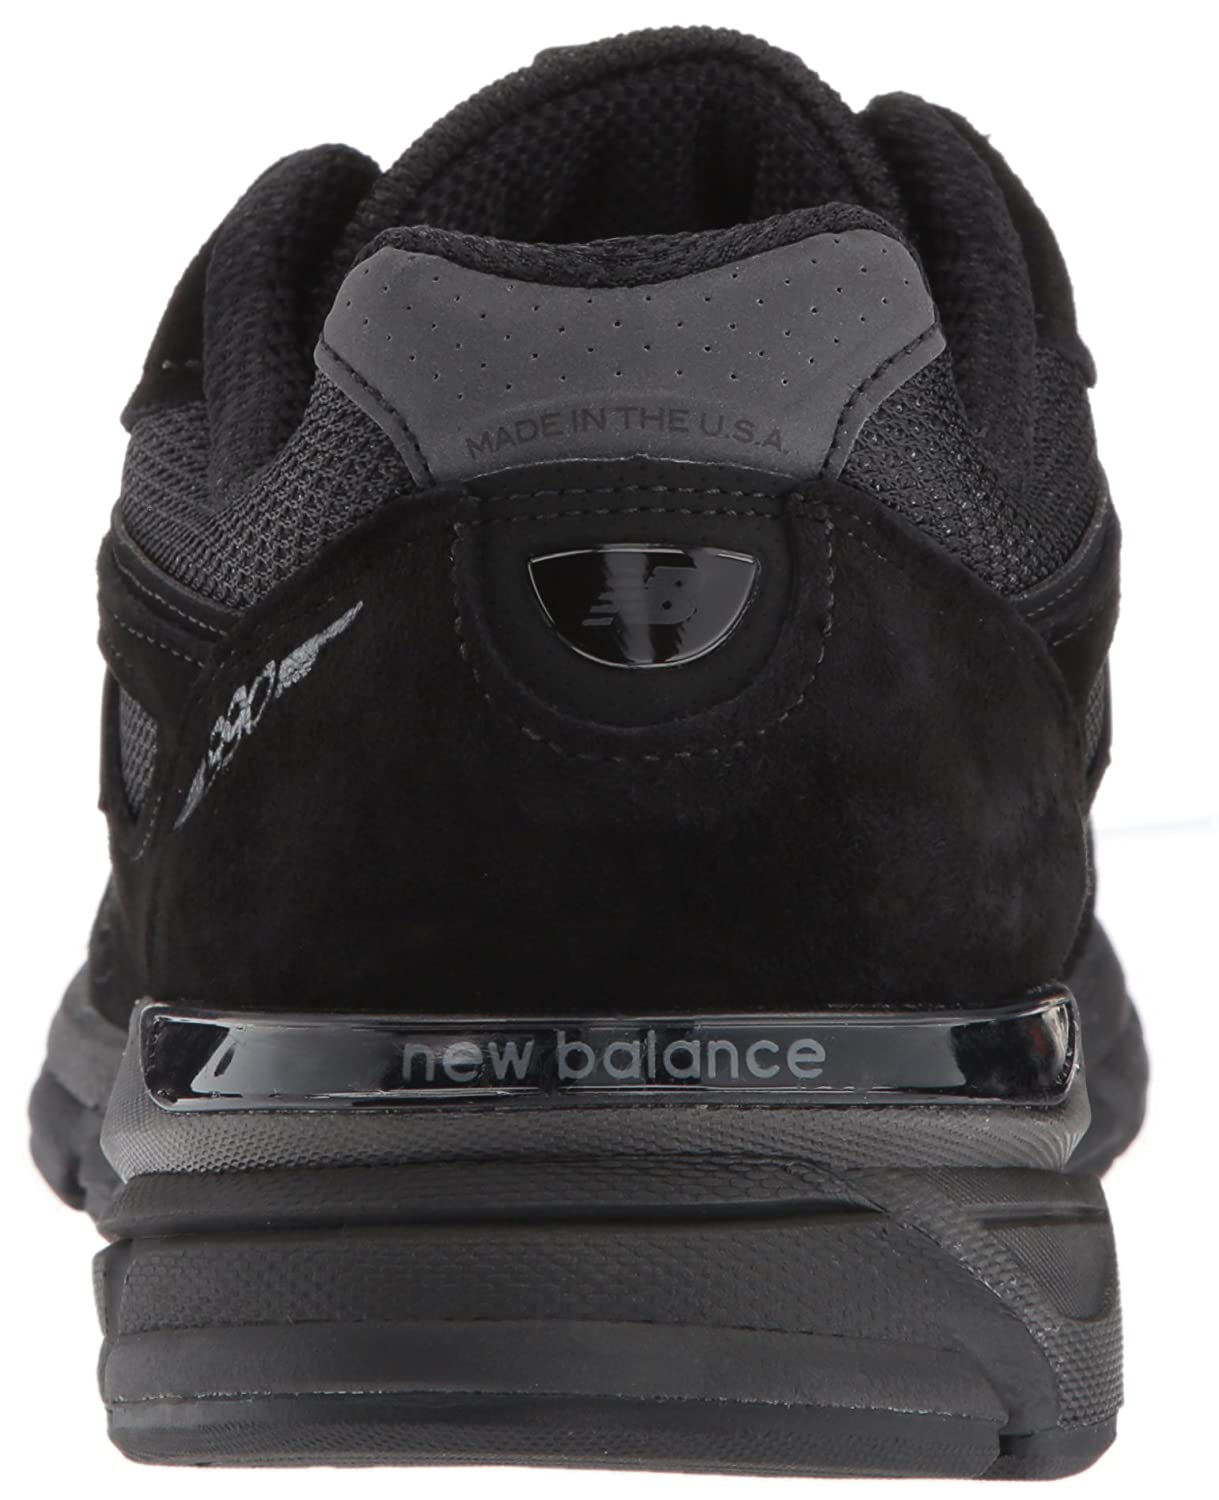 New-Balance-990-990v4-Classicc-Retro-Fashion-Sneaker-Made-in-USA thumbnail 18